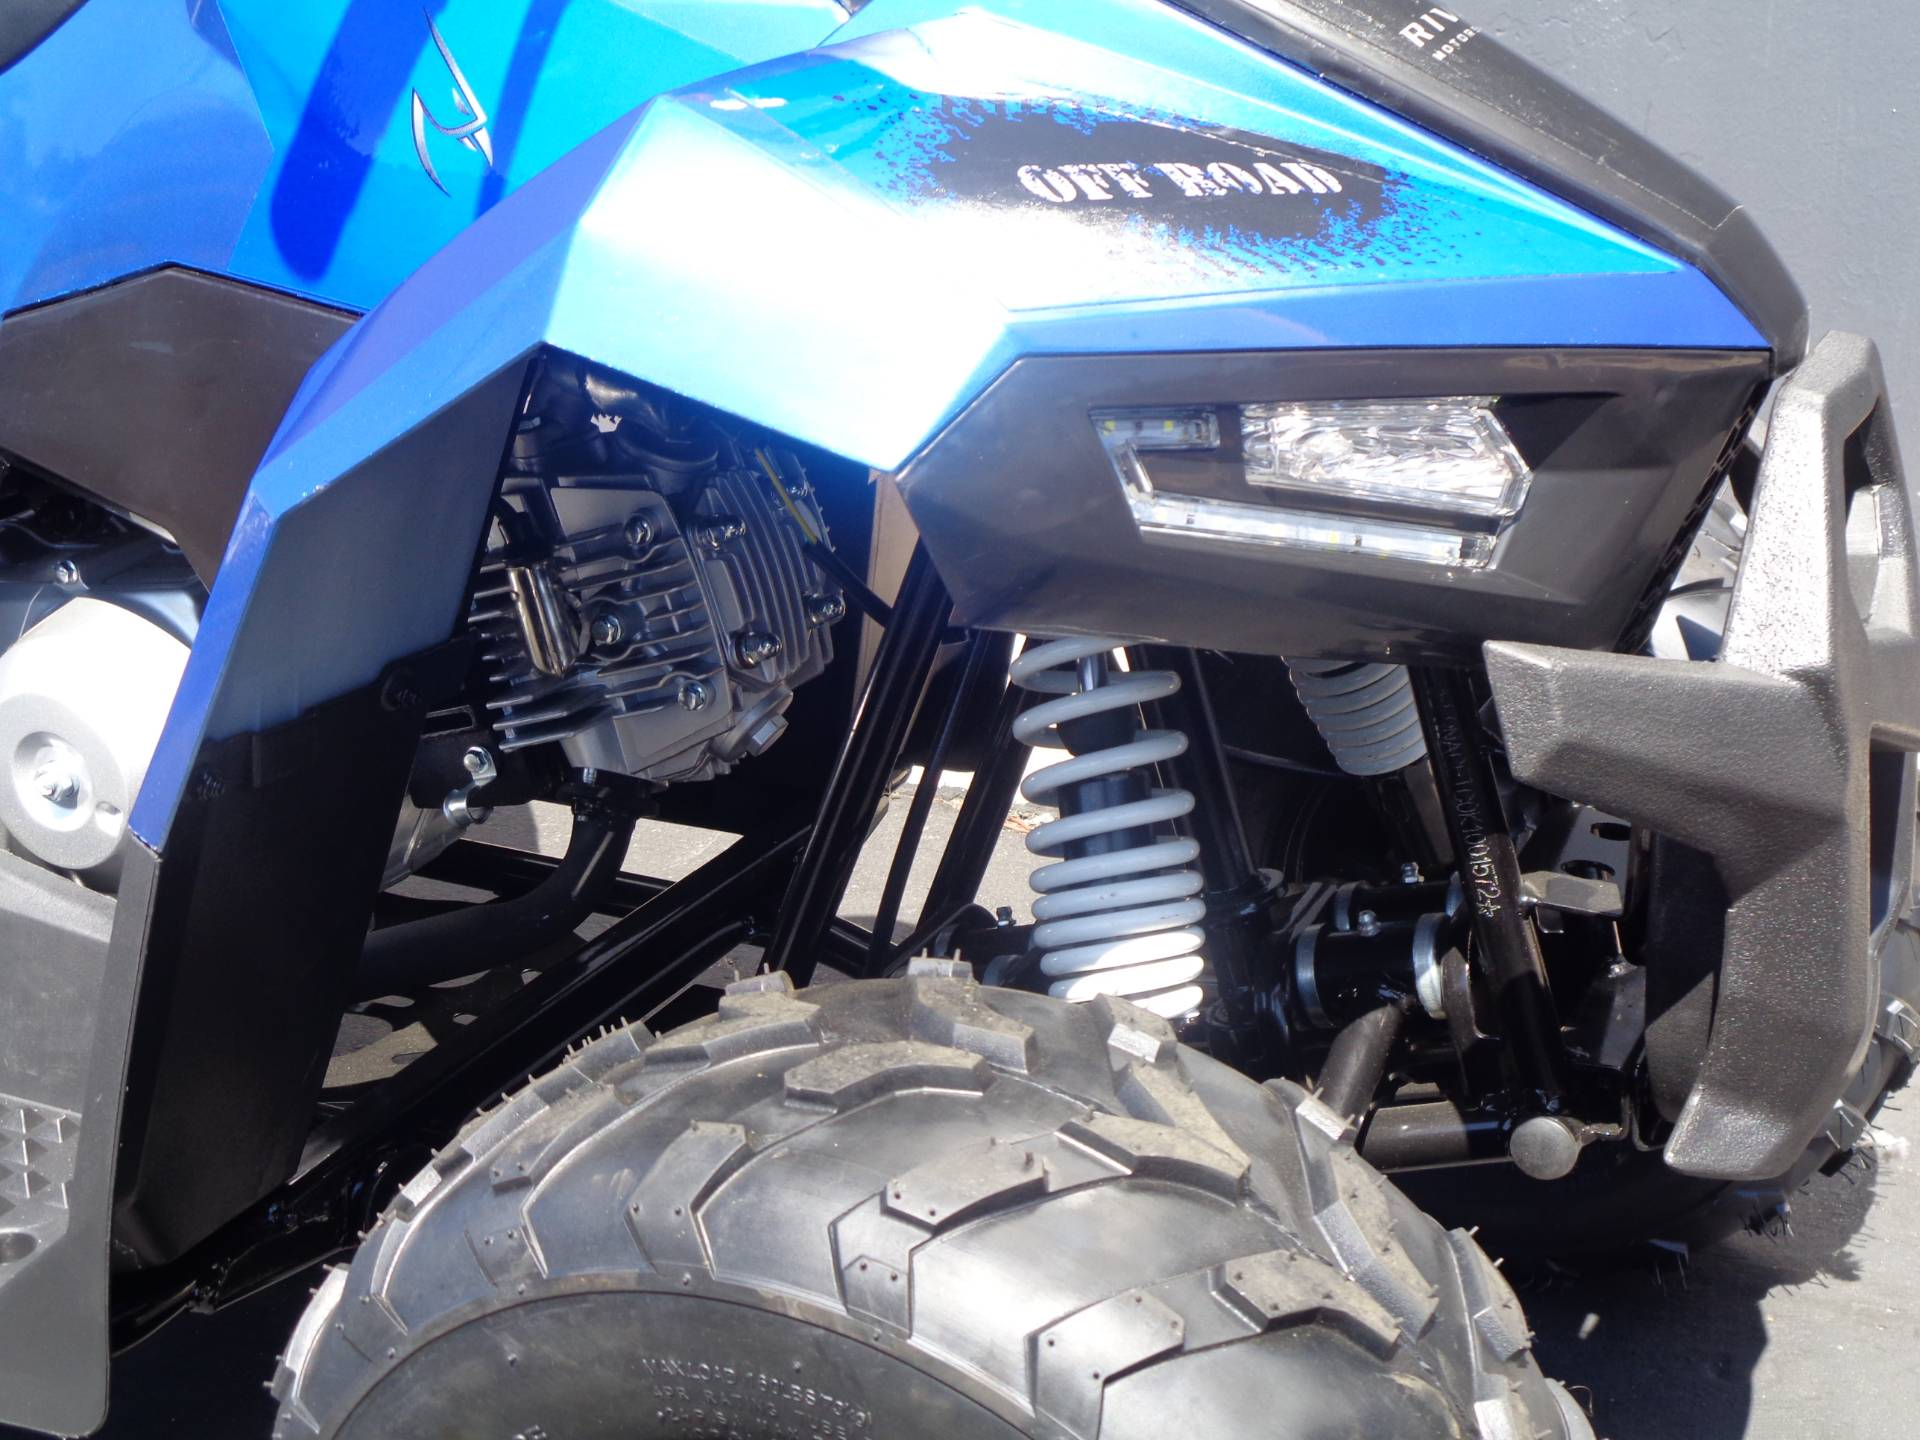 2019 Rival Motorsports CA MudHawk 6 in Chula Vista, California - Photo 7